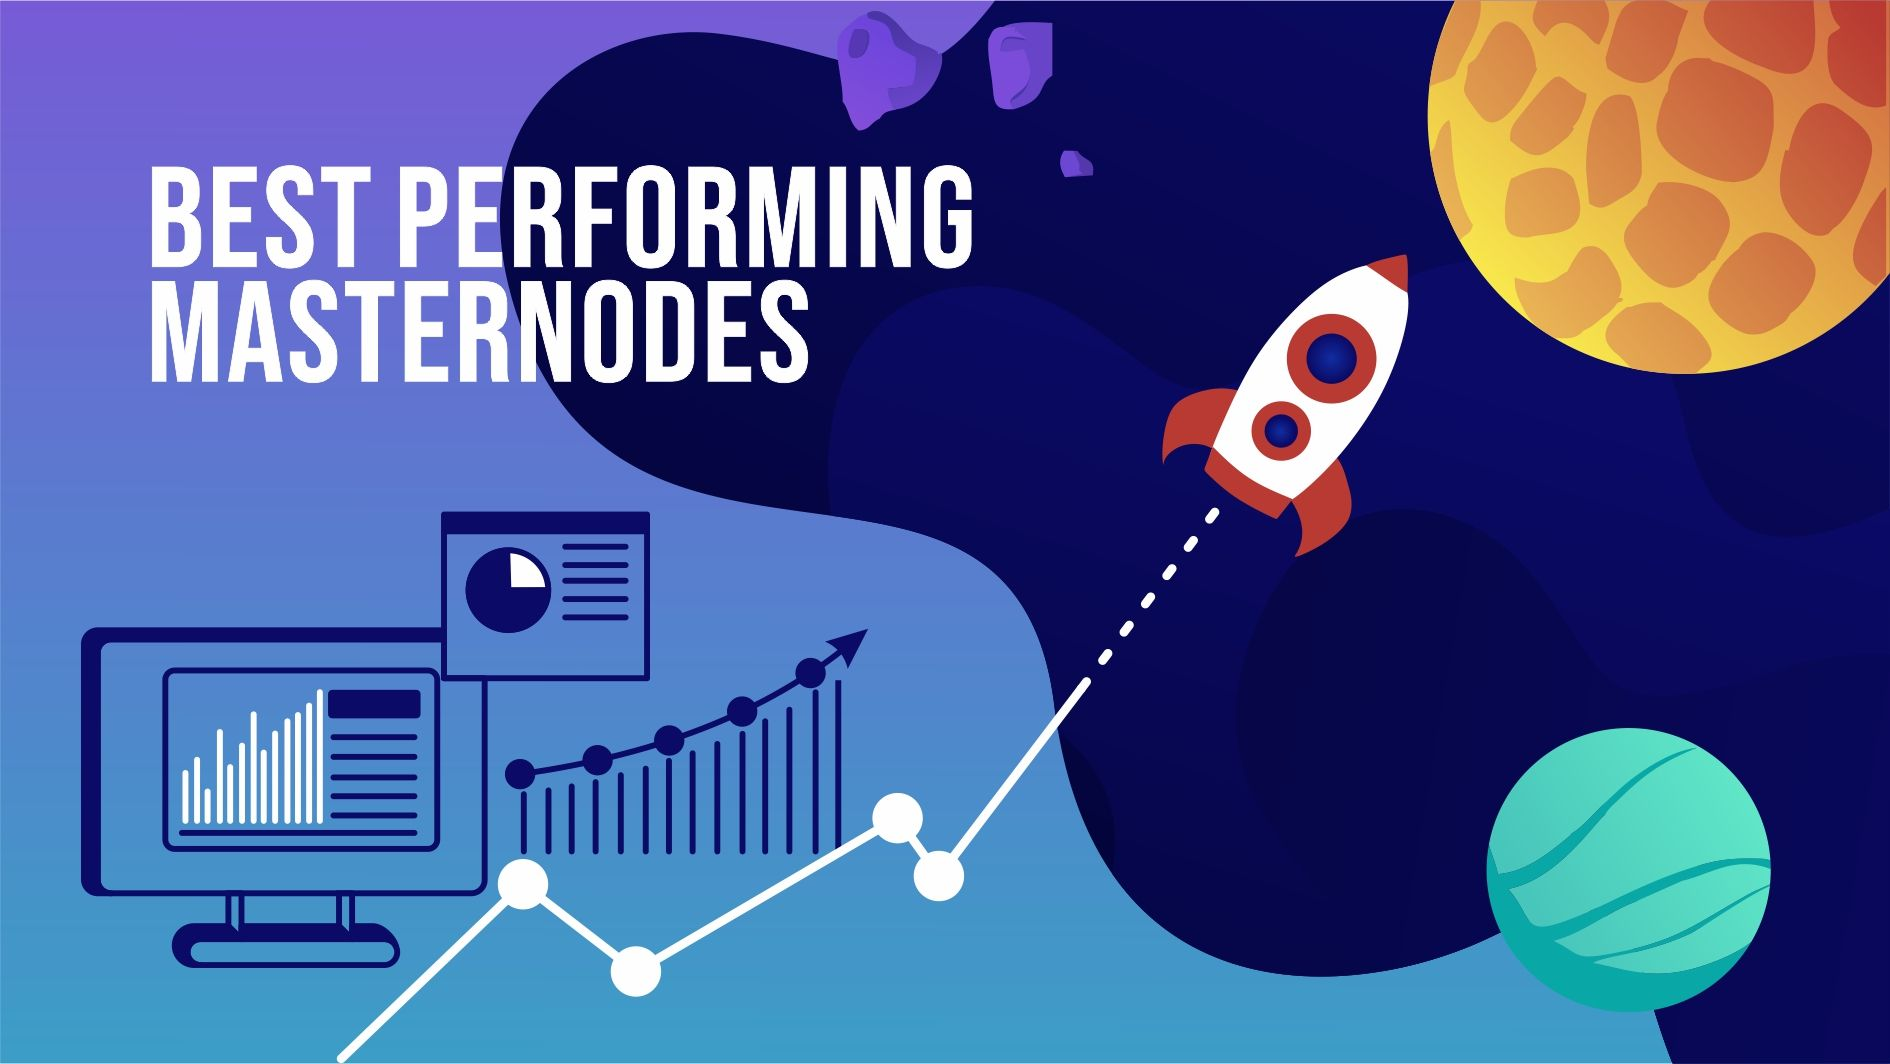 Best Performing Masternodes #week9